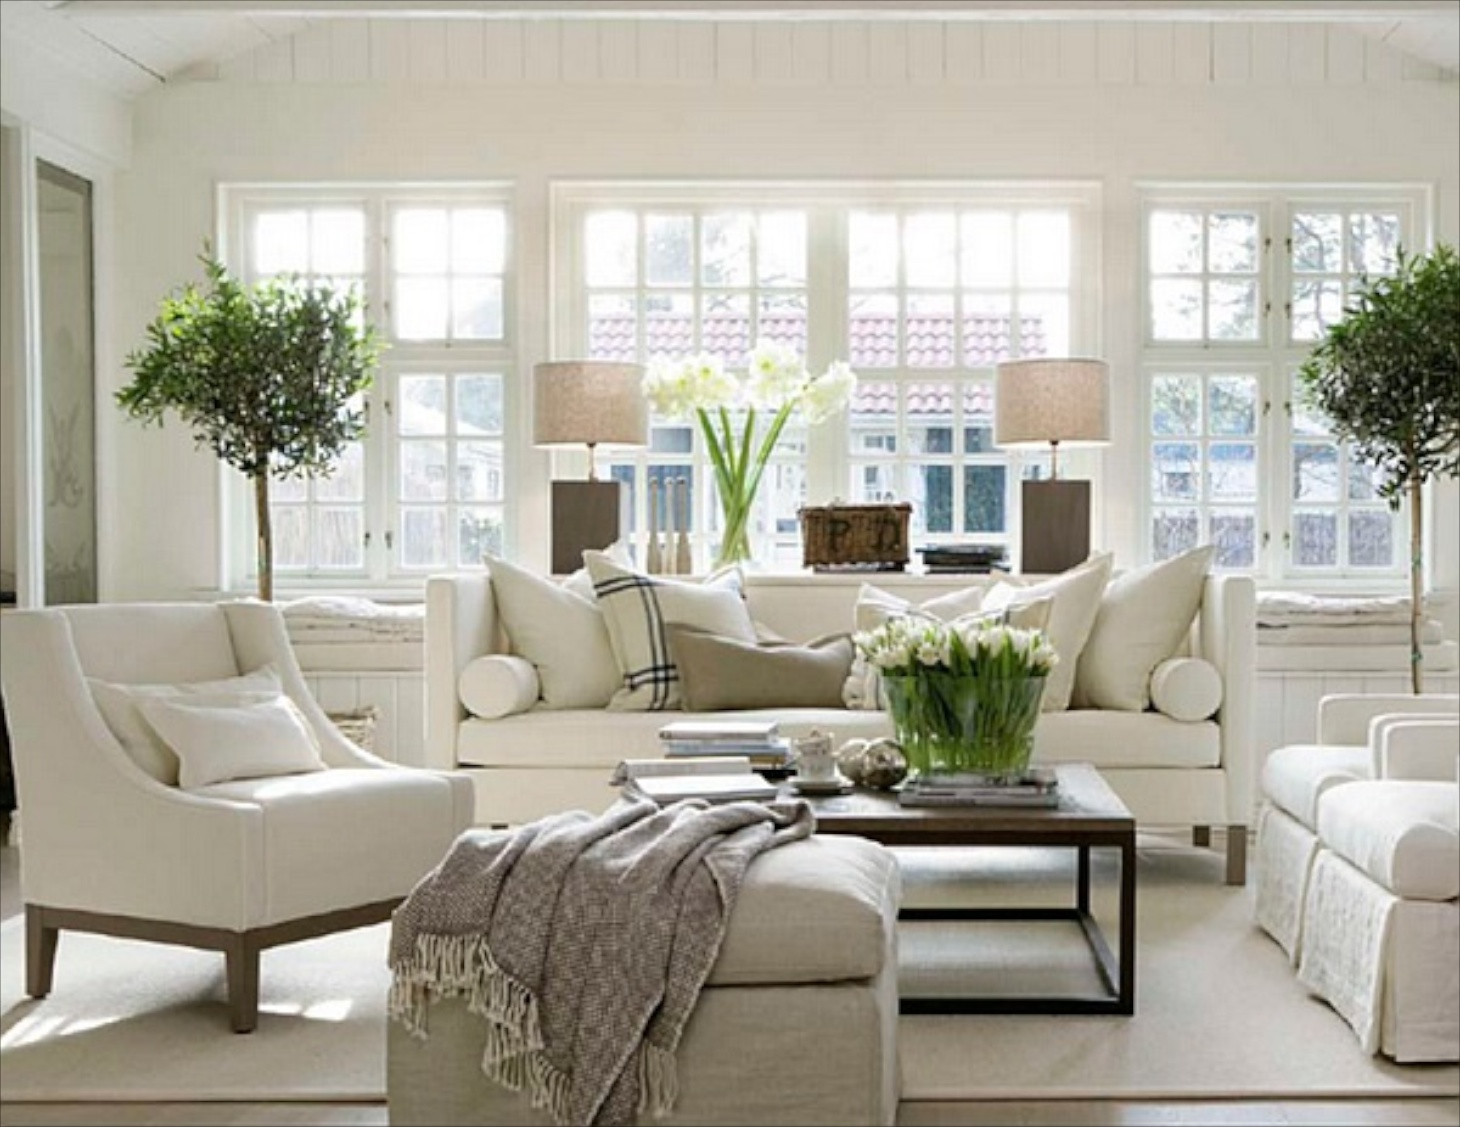 22 Cozy Traditional Living Room Indoor Plant Modern White: modern white living room decor